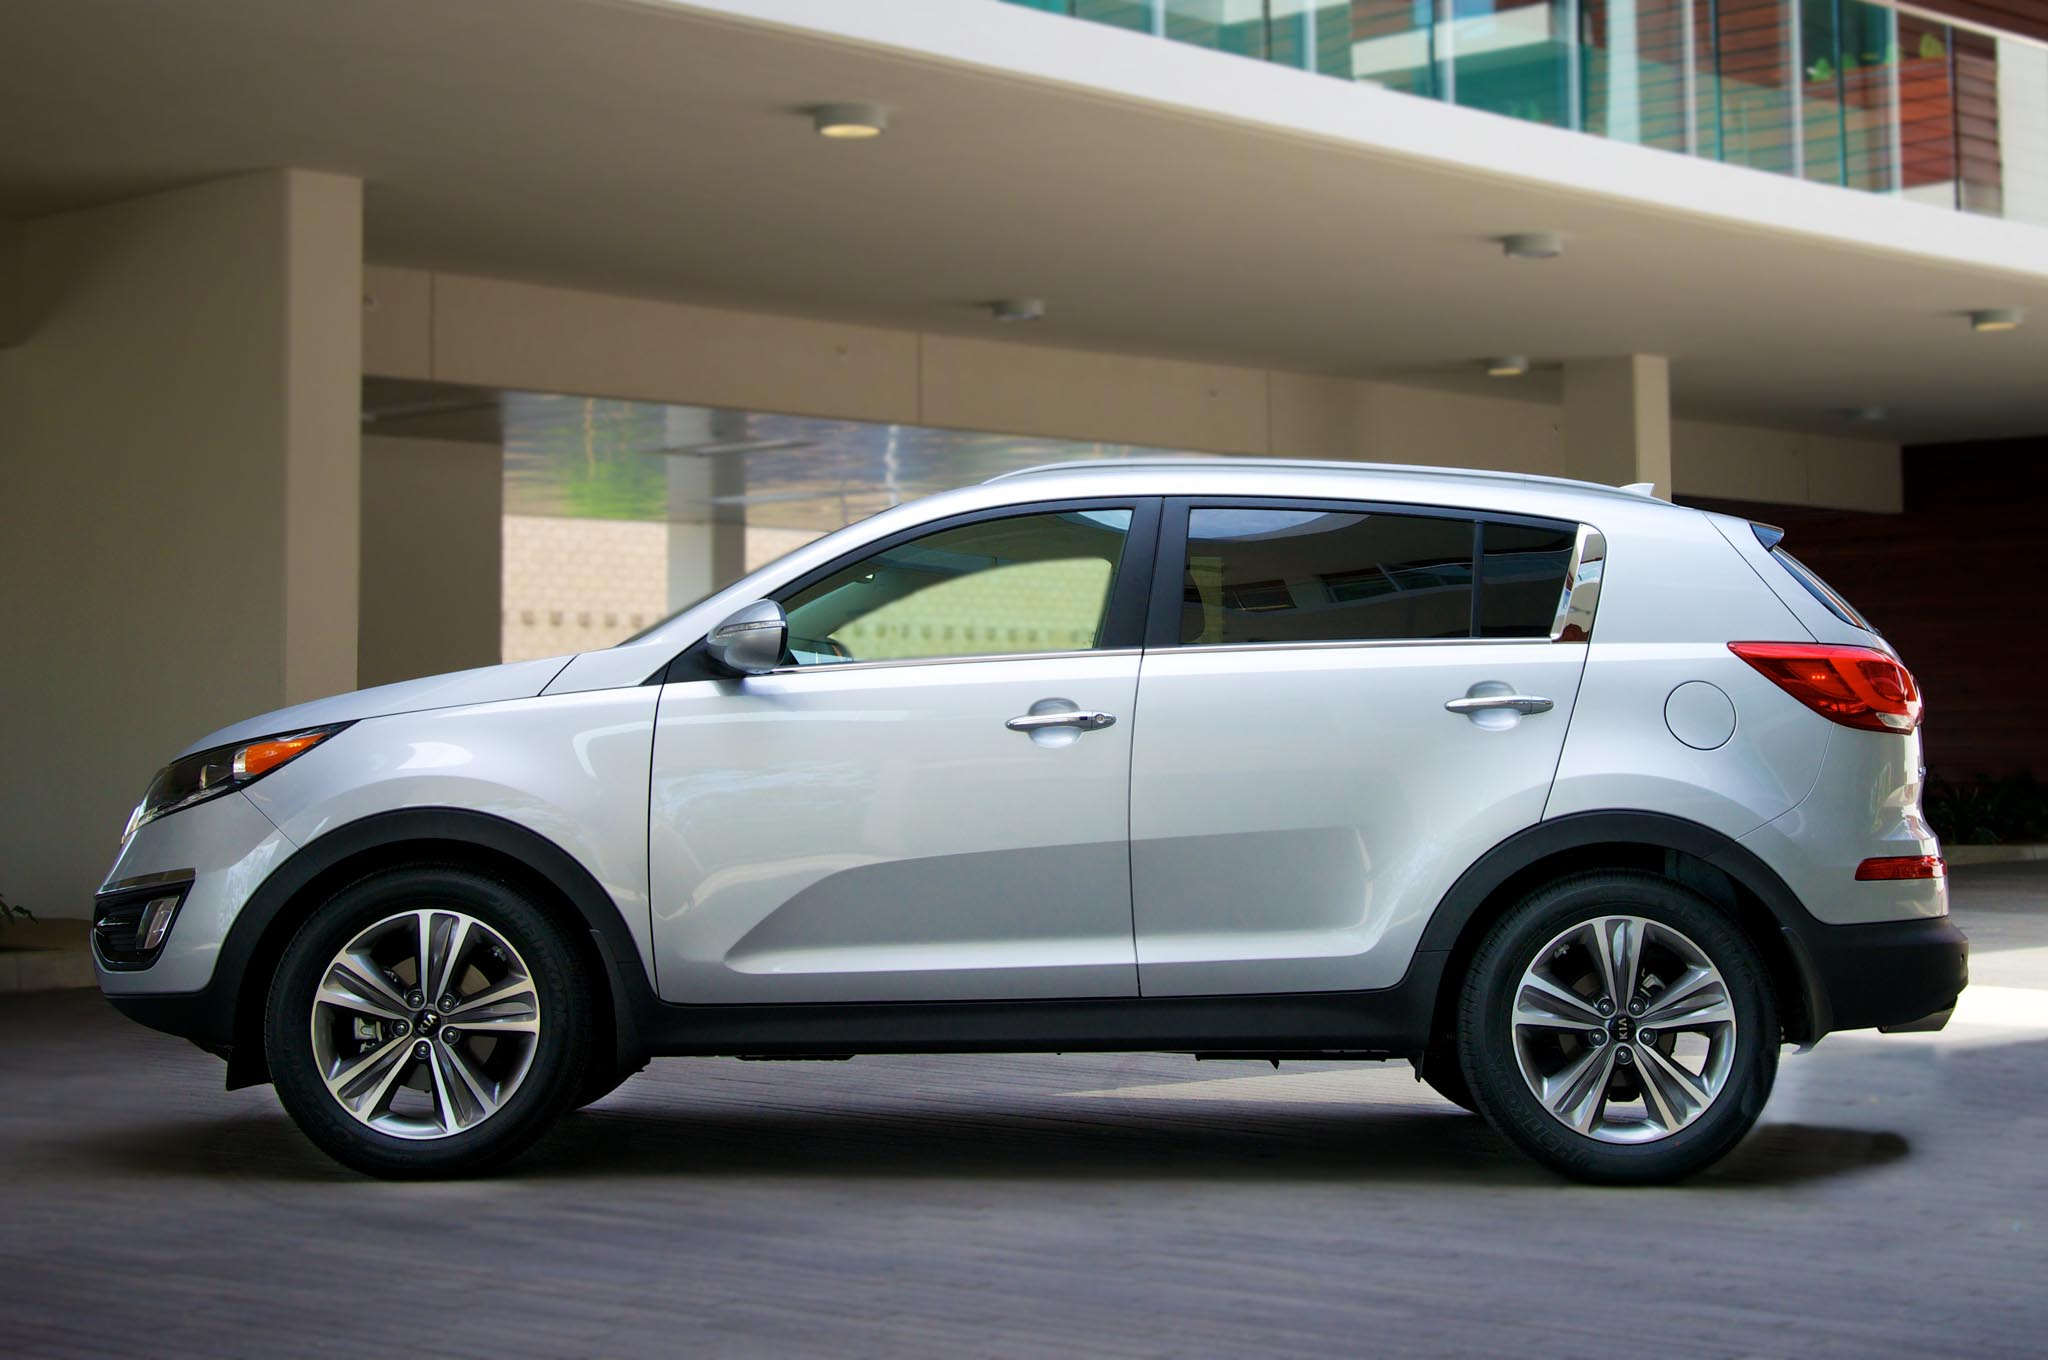 2014 kia sportage gets new engine, revised styling